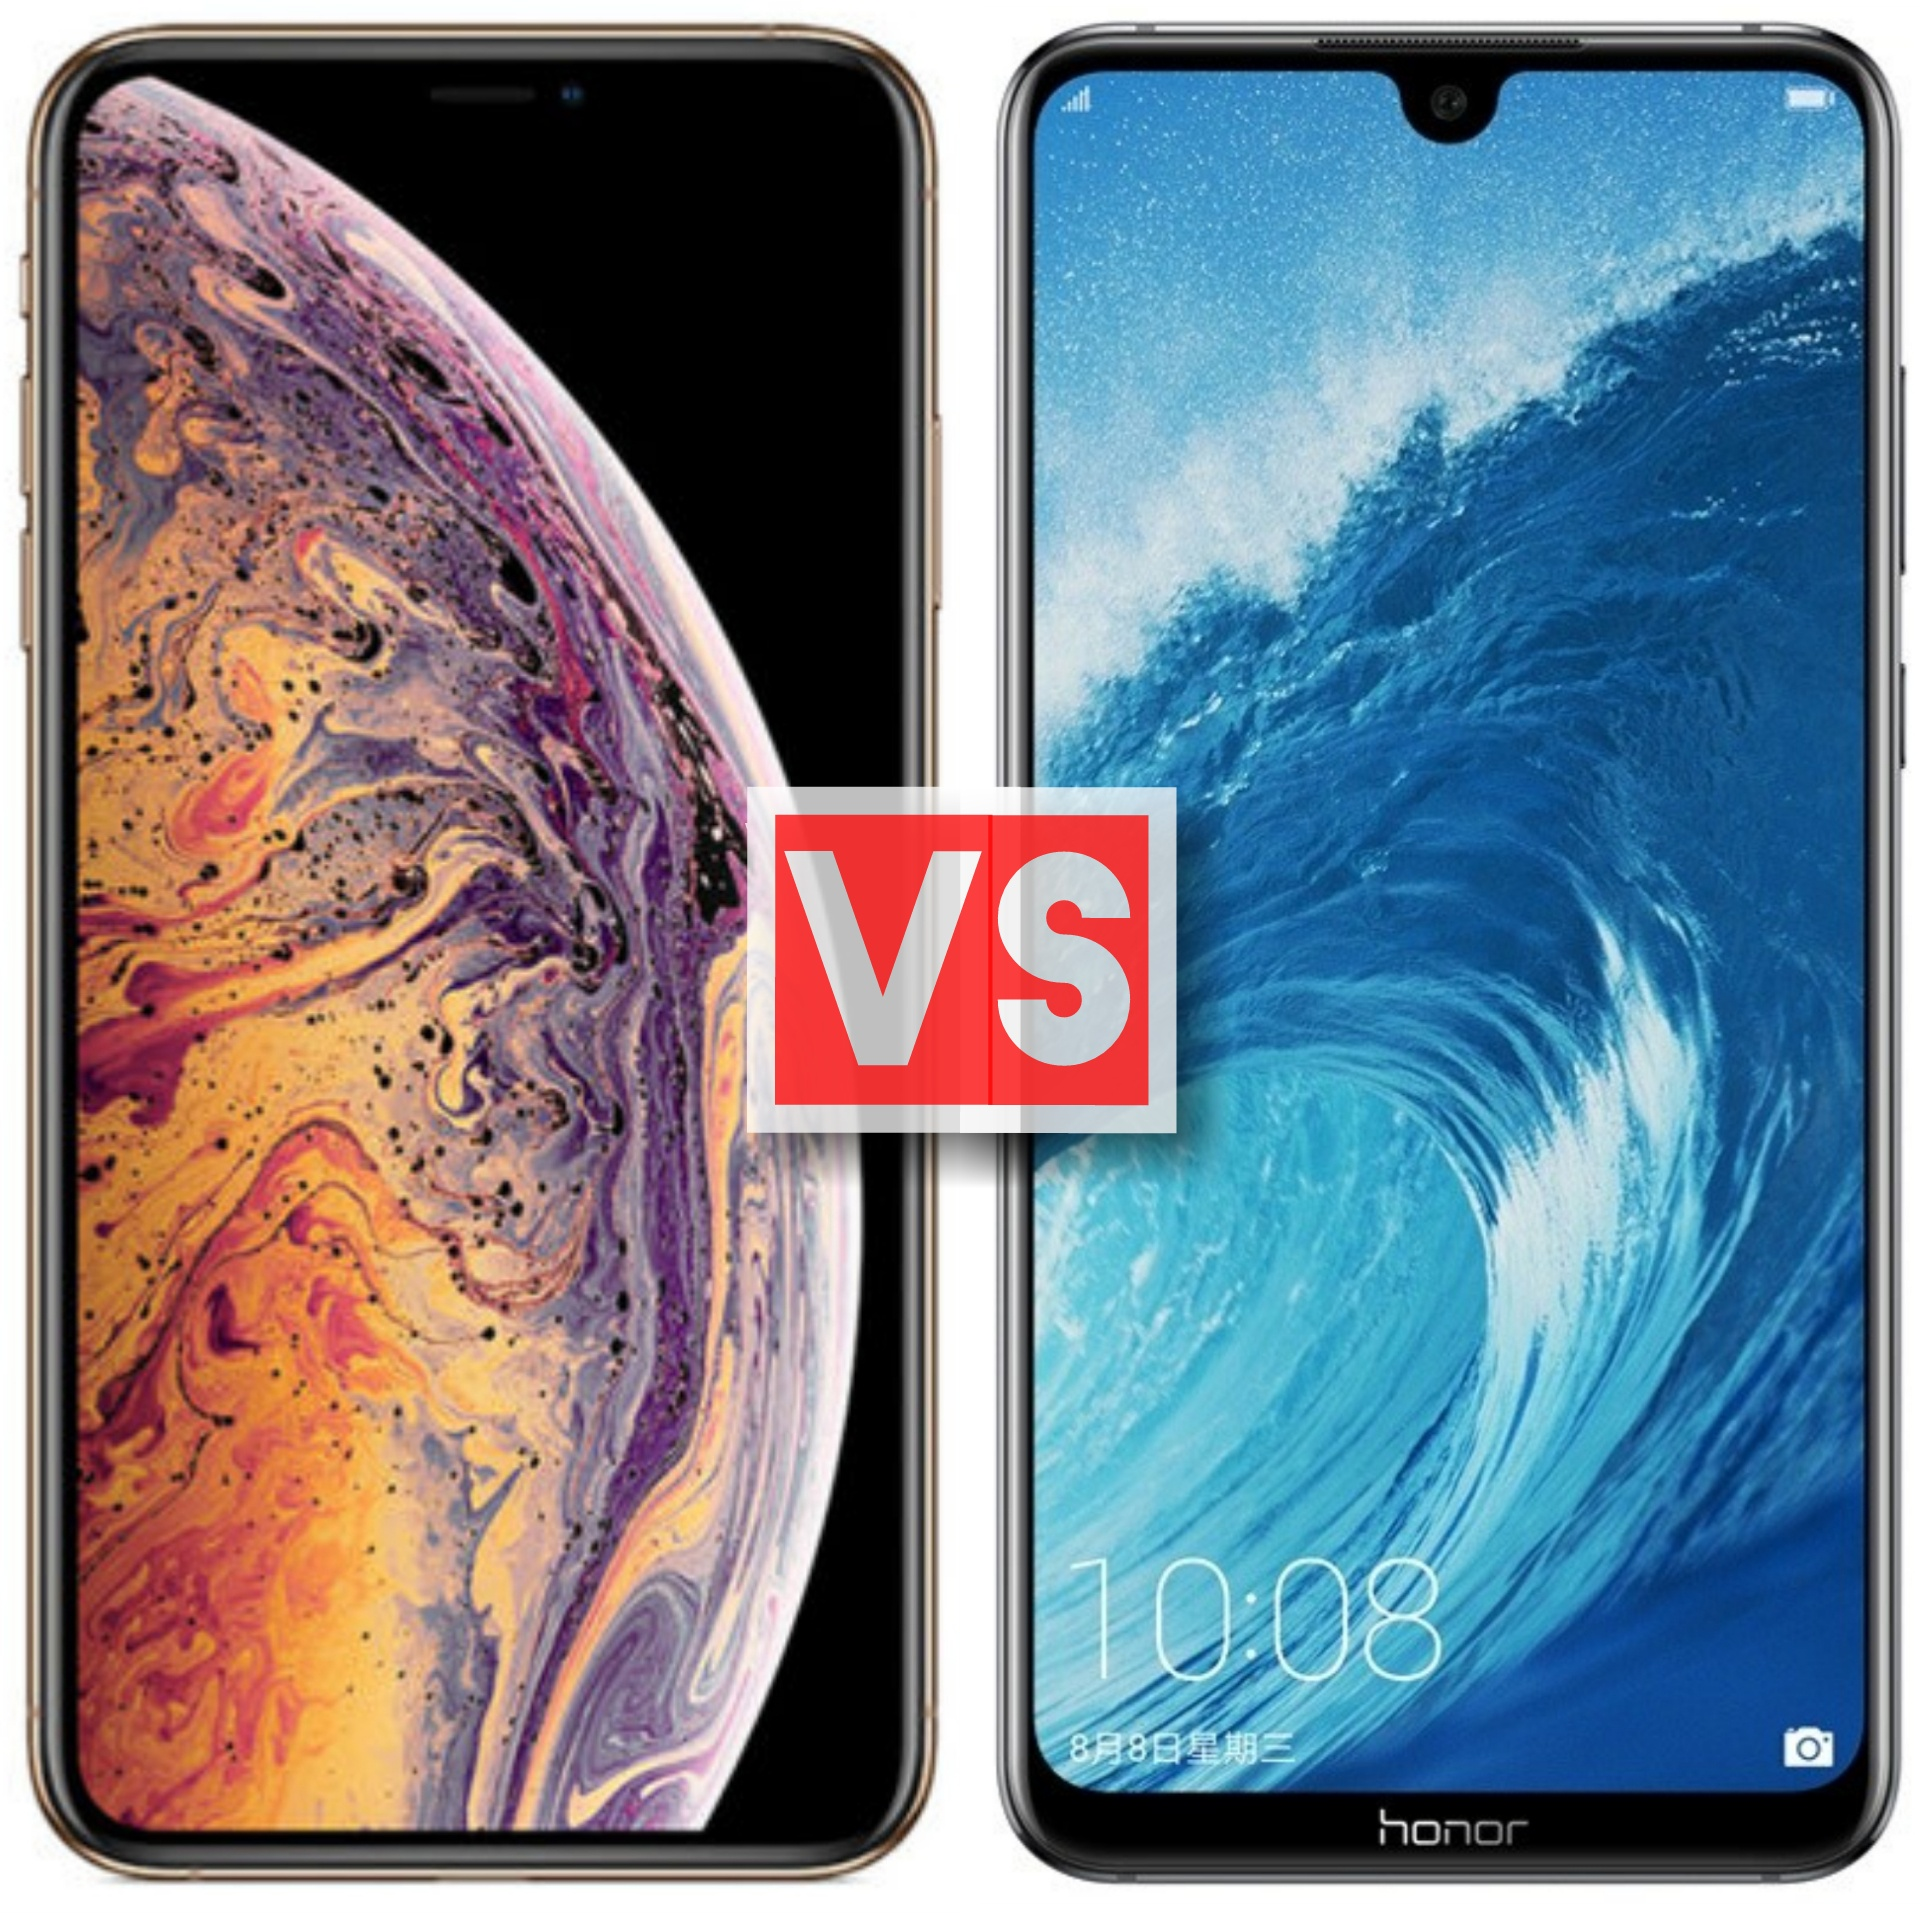 Apple iPhone XS Max Vs Honor 8X Max How Maxed Out Are These Two